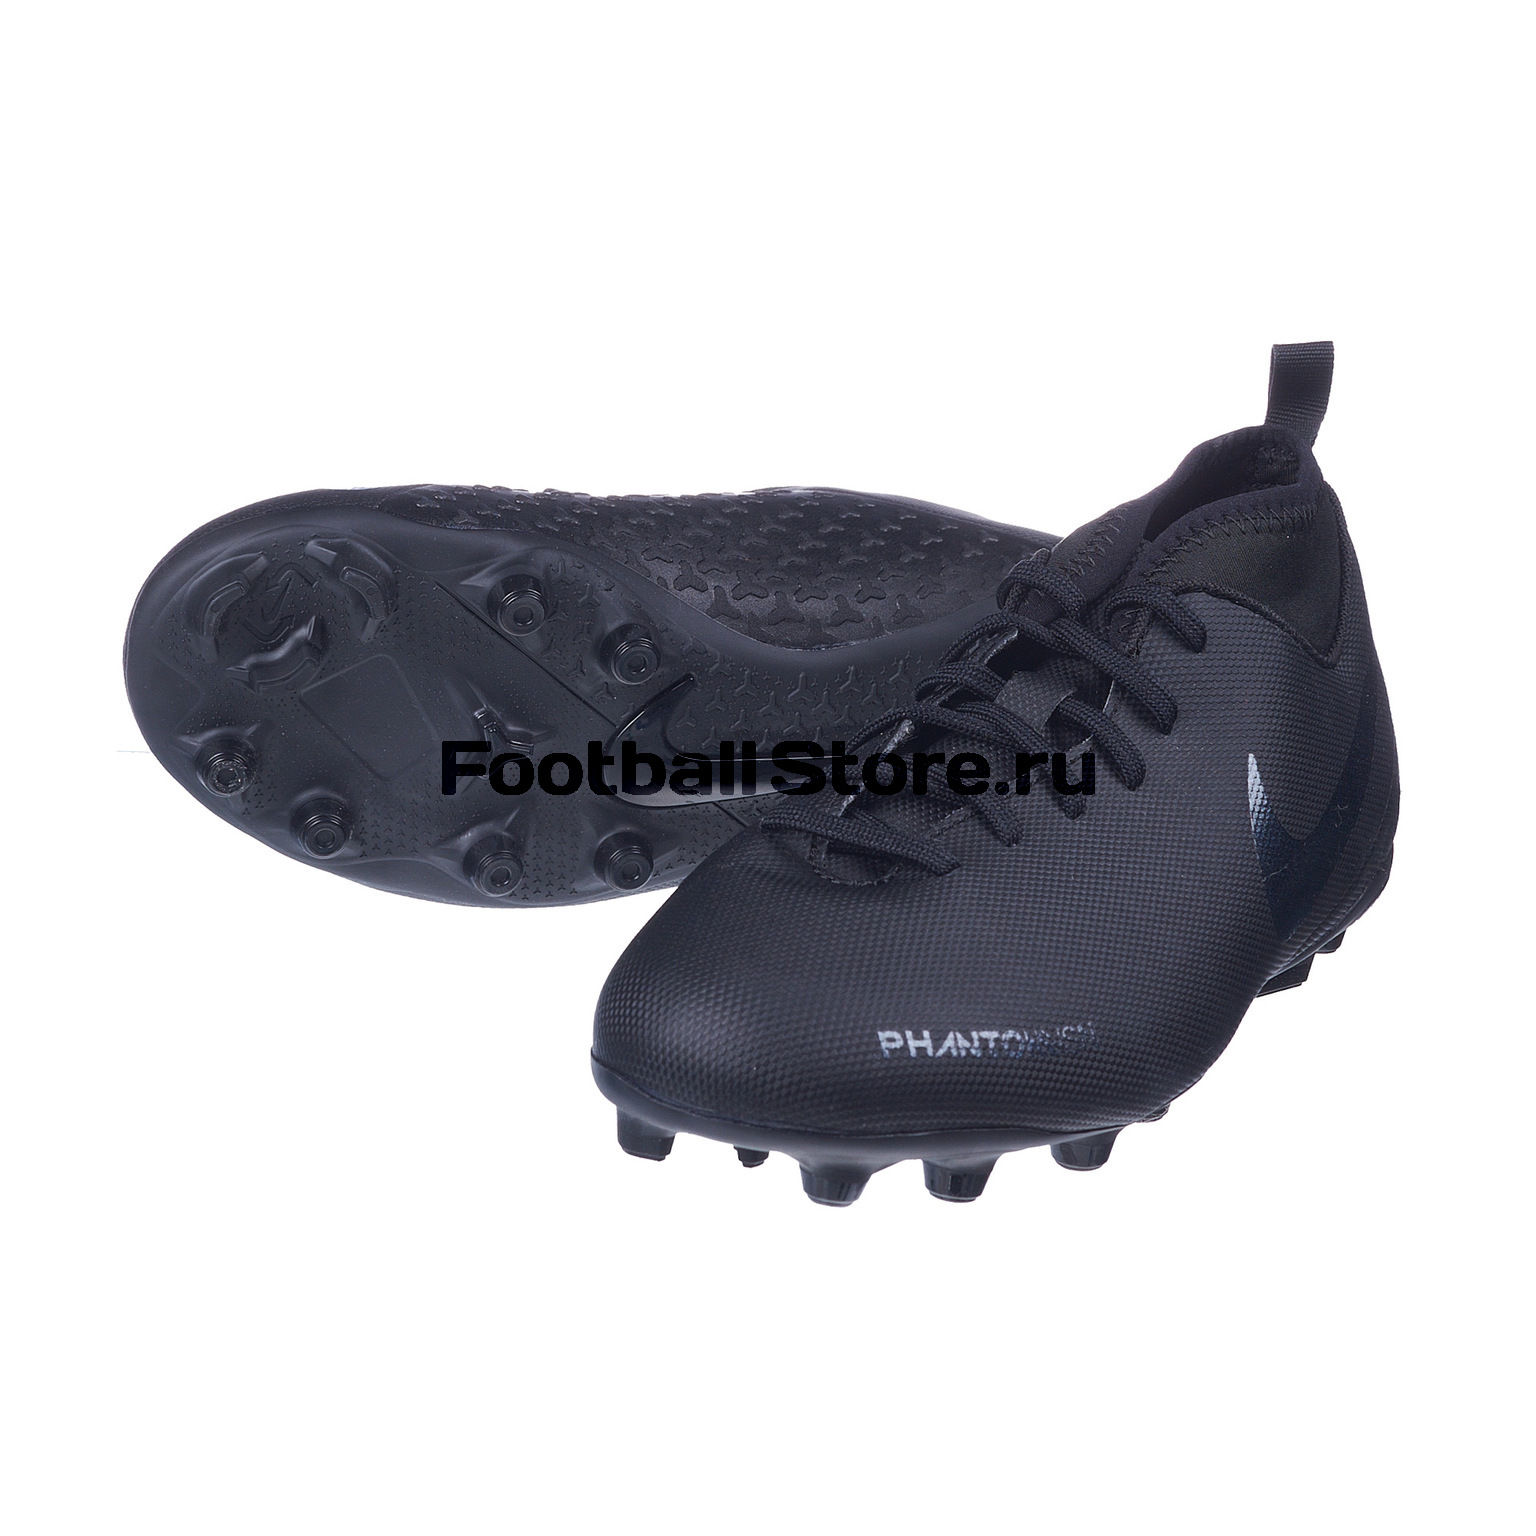 Бутсы детские Nike Phantom Vision Club FG/MG AO3288-001 бутсы детские nike phantom vision academy df fg mg ao3287 600